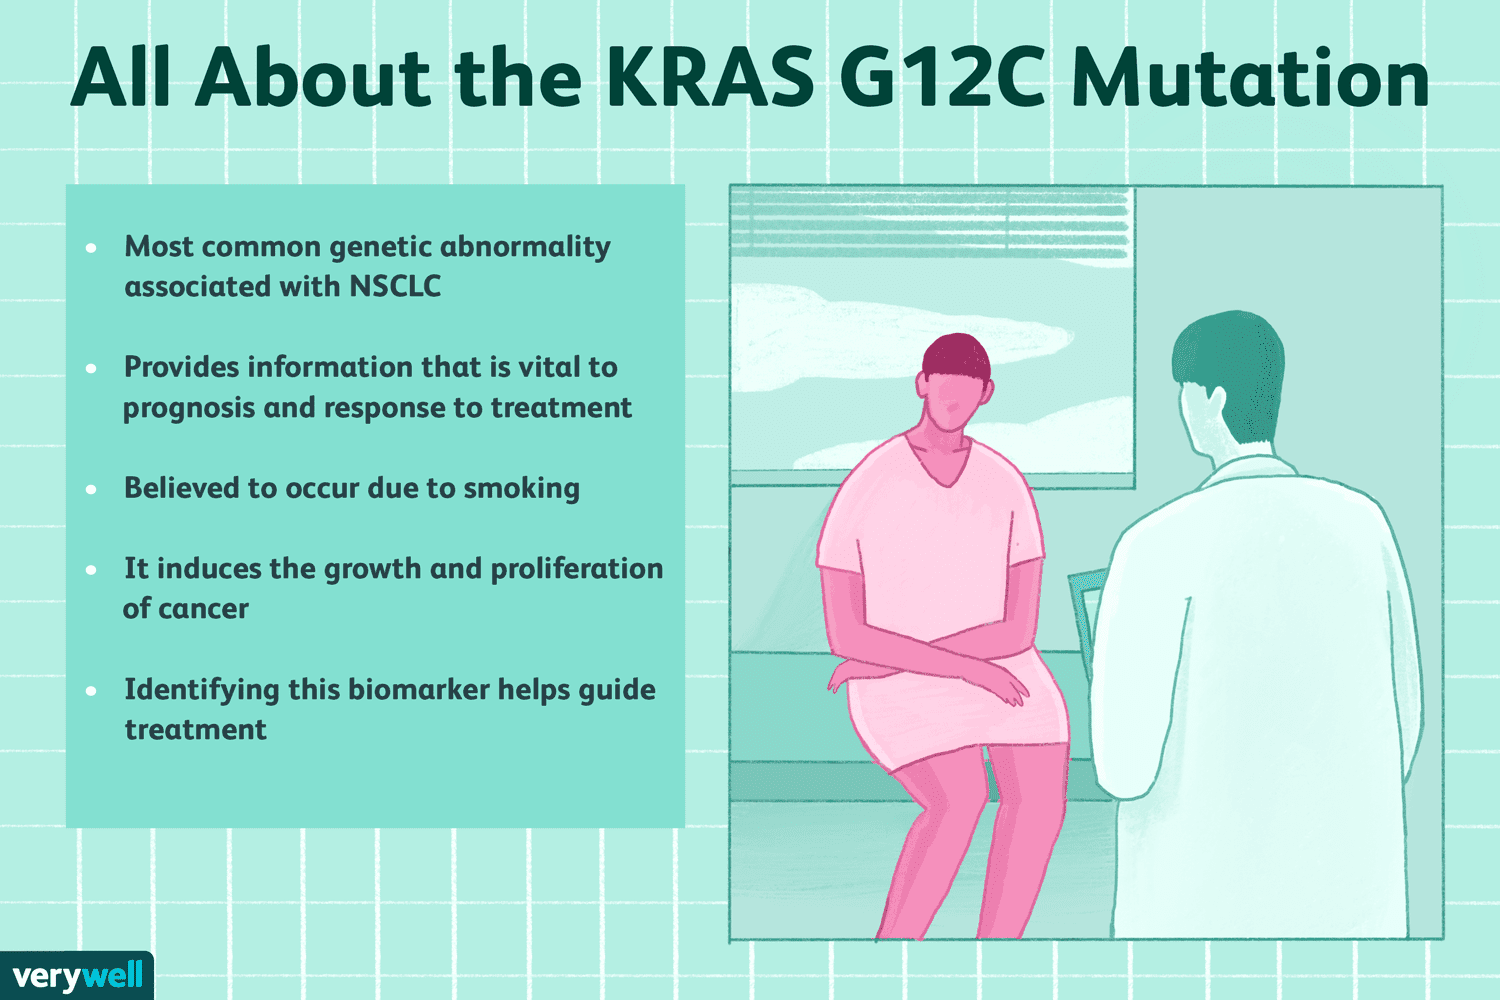 All About the KRAS G12C Mutation